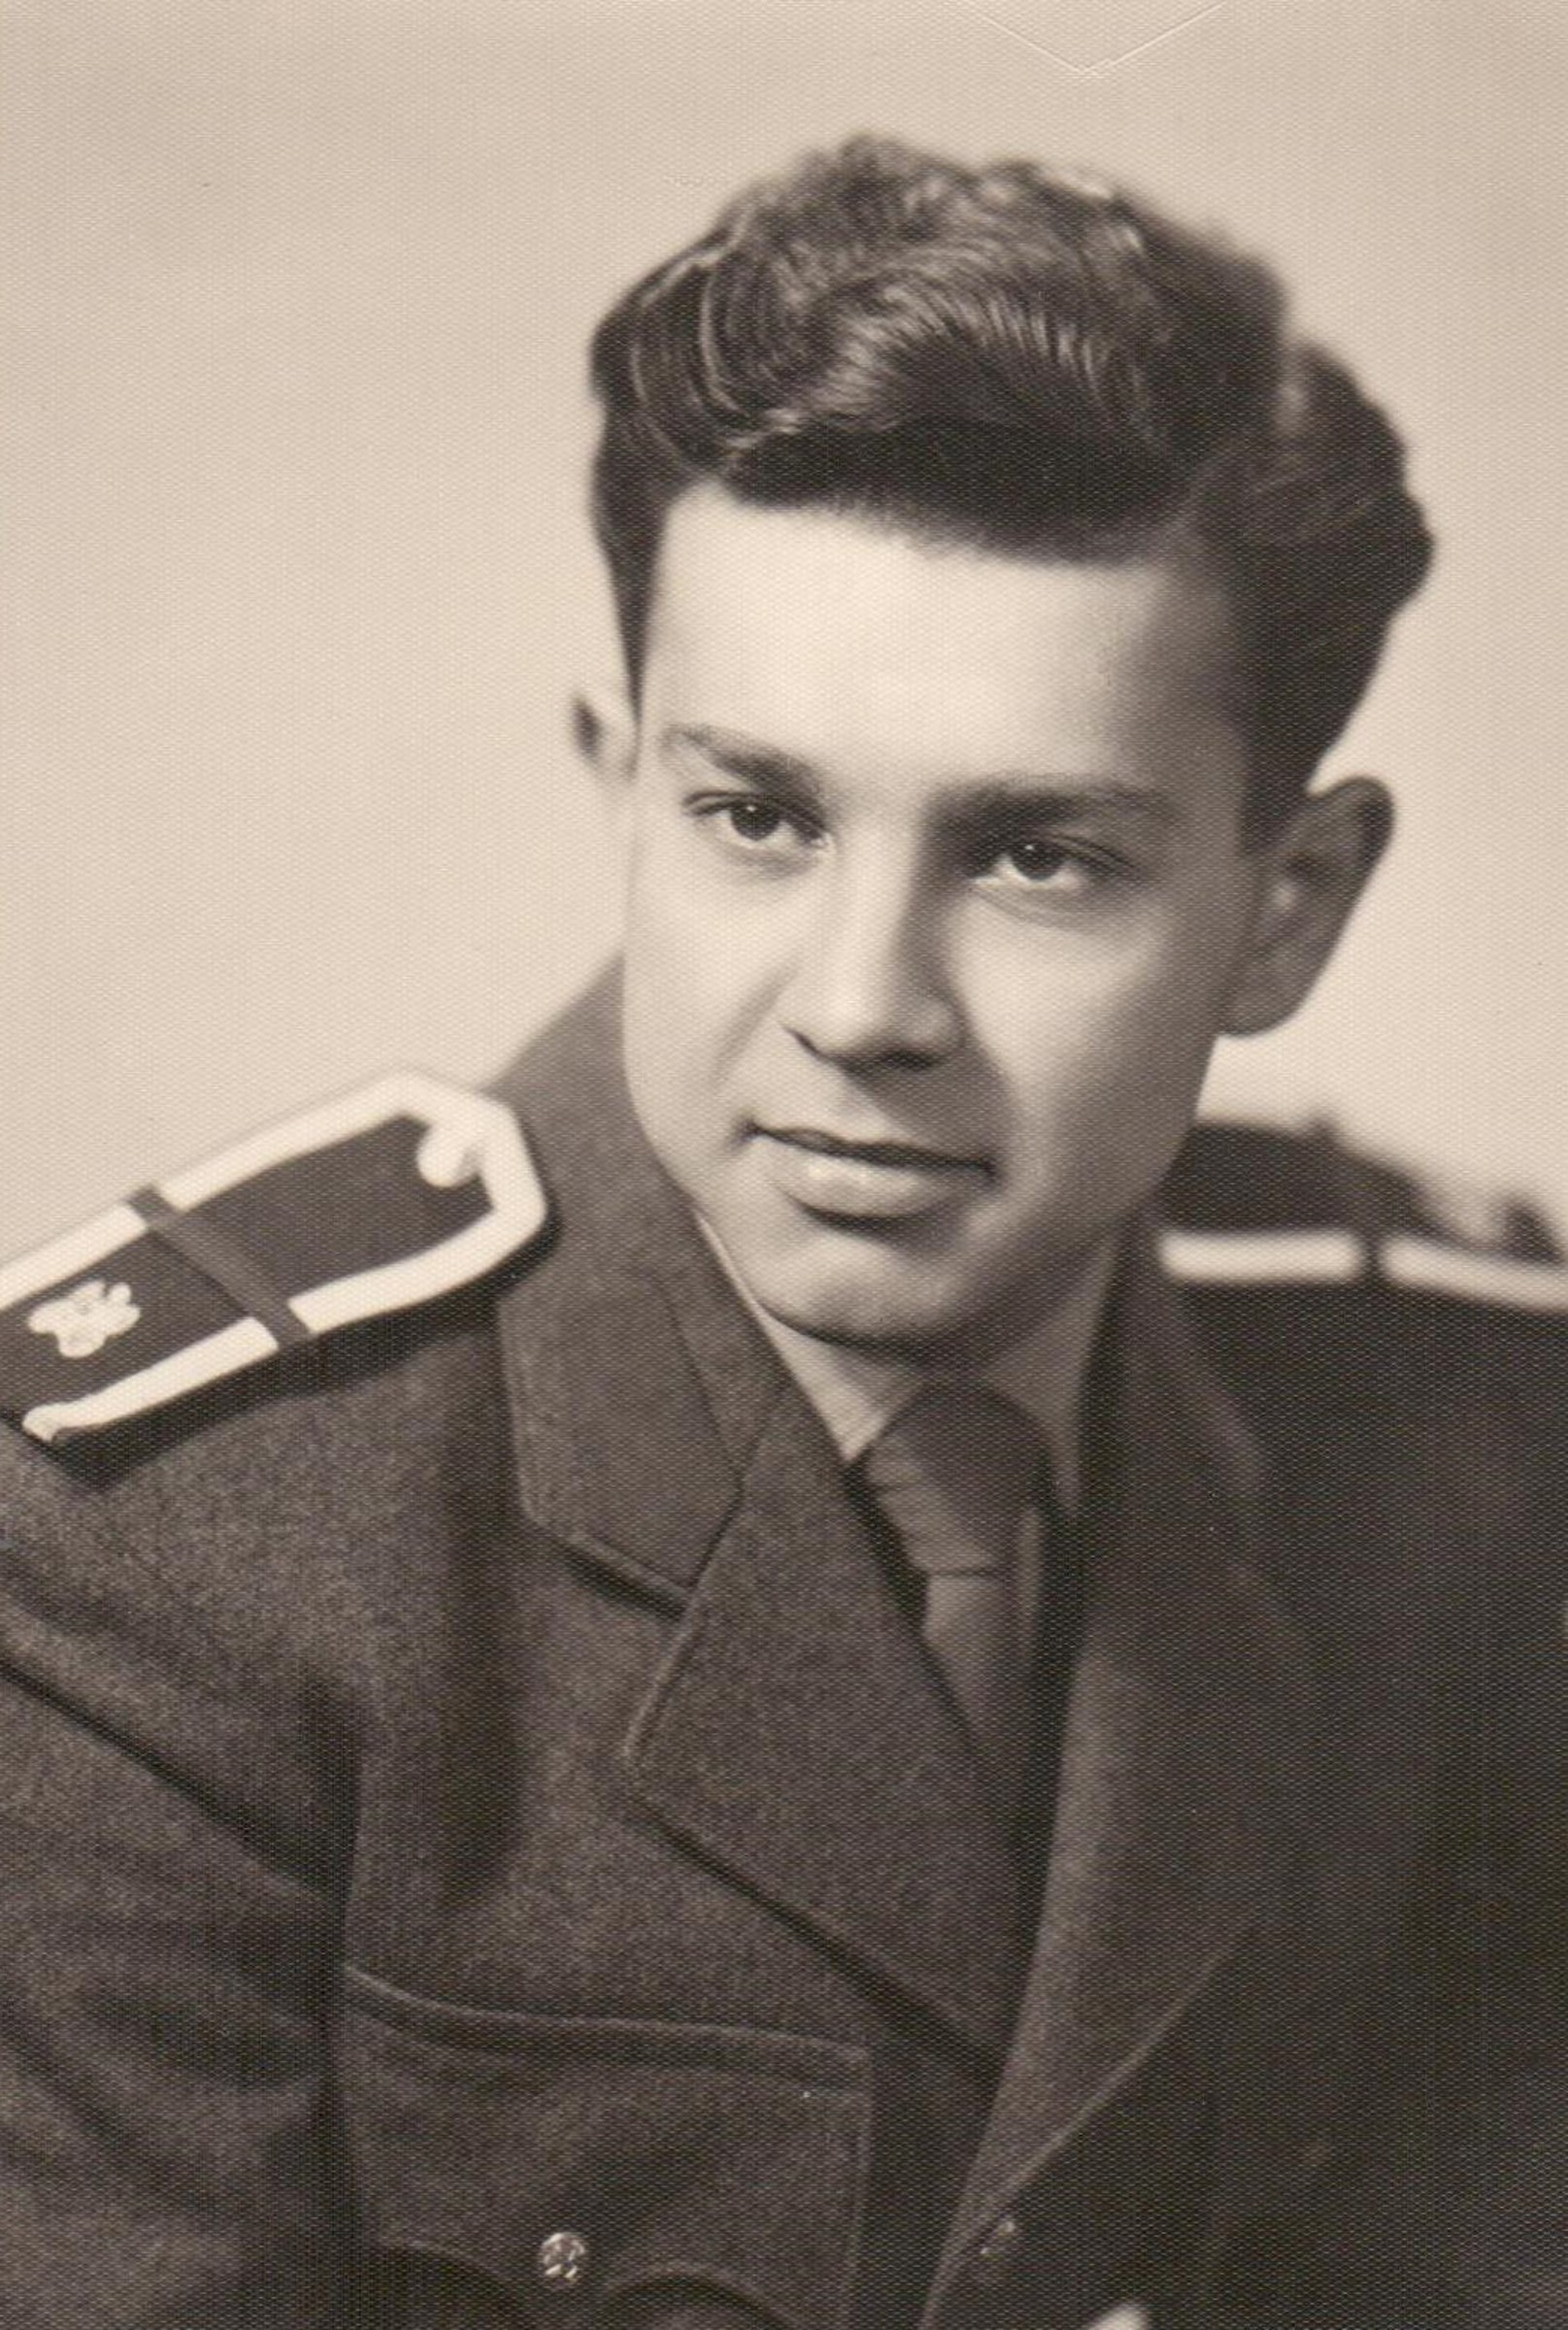 1956; as a soldier